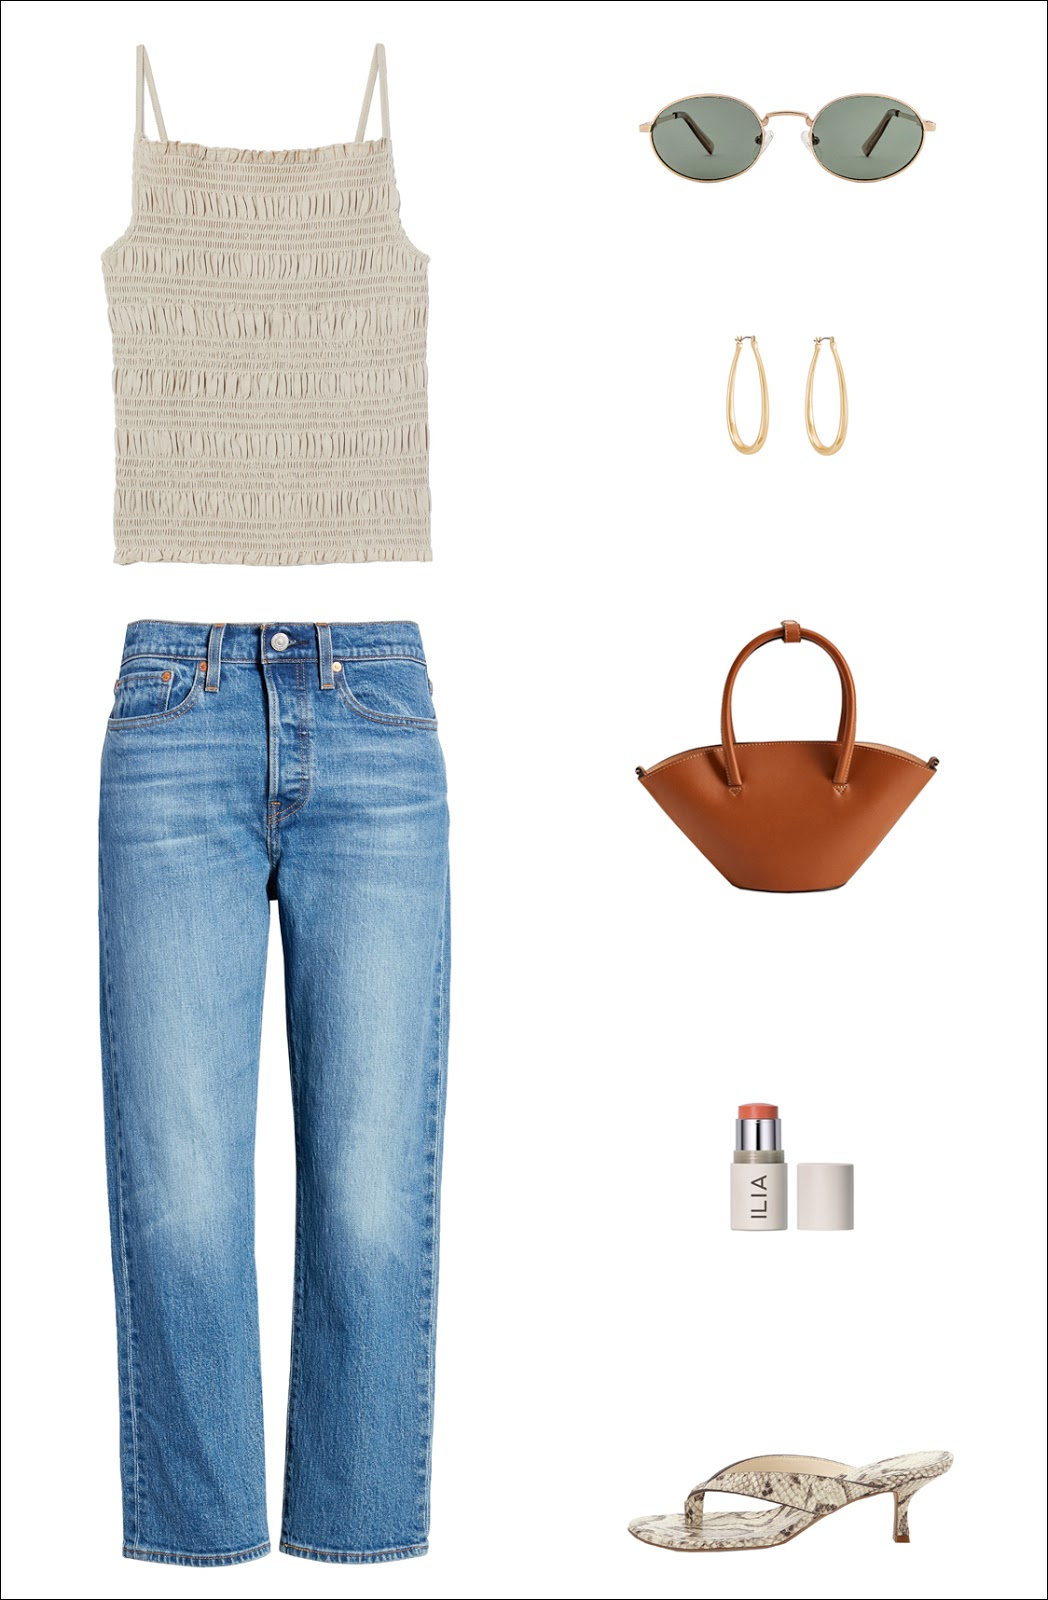 Under-$100 Summer Outfit Idea: smocked neutral tank top, round metal-frame sunglasses, tear-drop hoop earrings, a mini camel bag, cropped straight-leg jeans, and heeled flip-flop sandals.